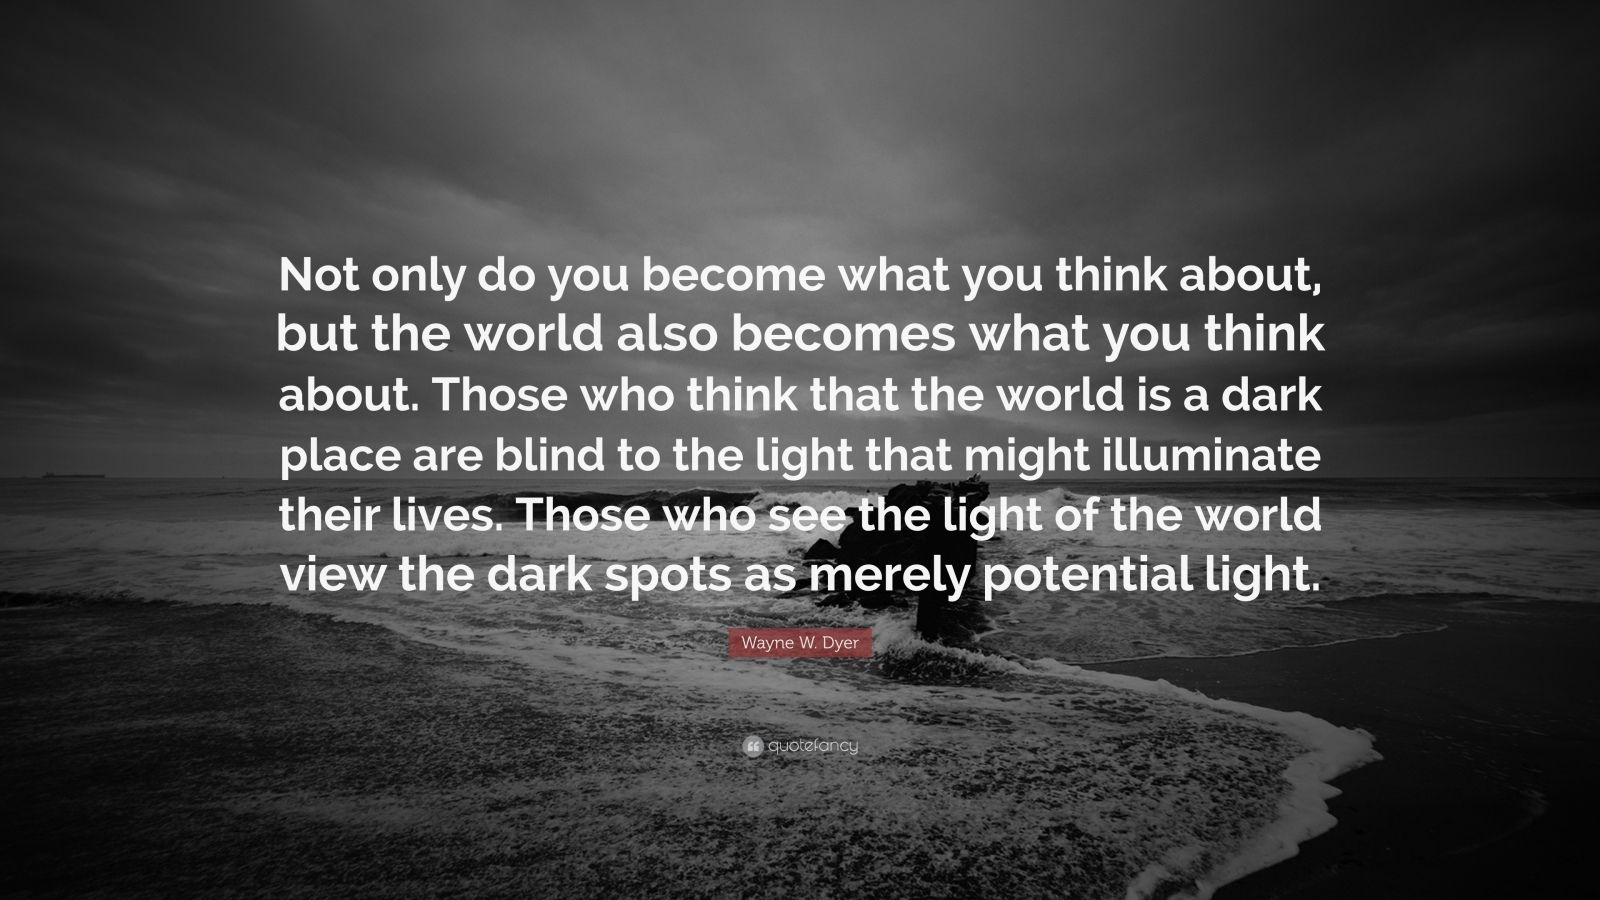 """Wayne W. Dyer Quote: """"Not only do you become what you think about, but the world also becomes what you think about. Those who think that the world is a dark place are blind to the light that might illuminate their lives. Those who see the light of the world view the dark spots as merely potential light."""""""